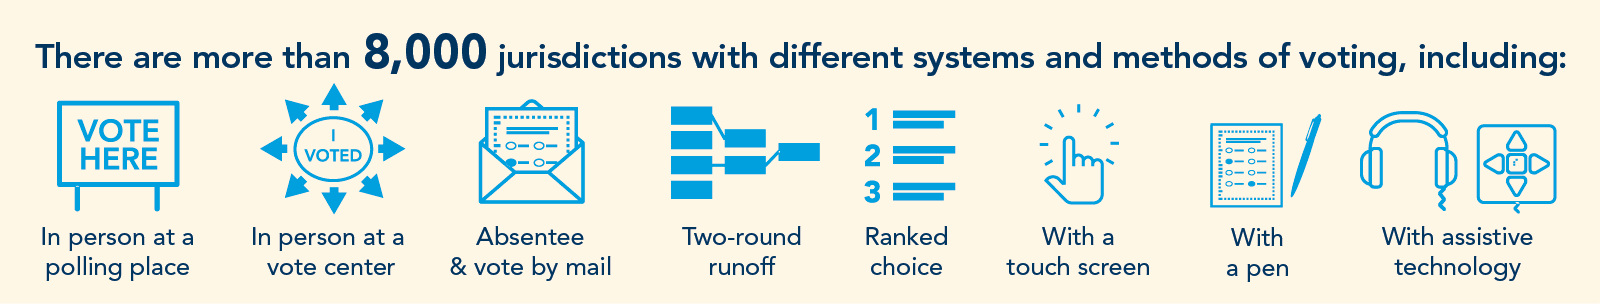 There are more than 8,000 jurisdictions with different systems and methods of voting.